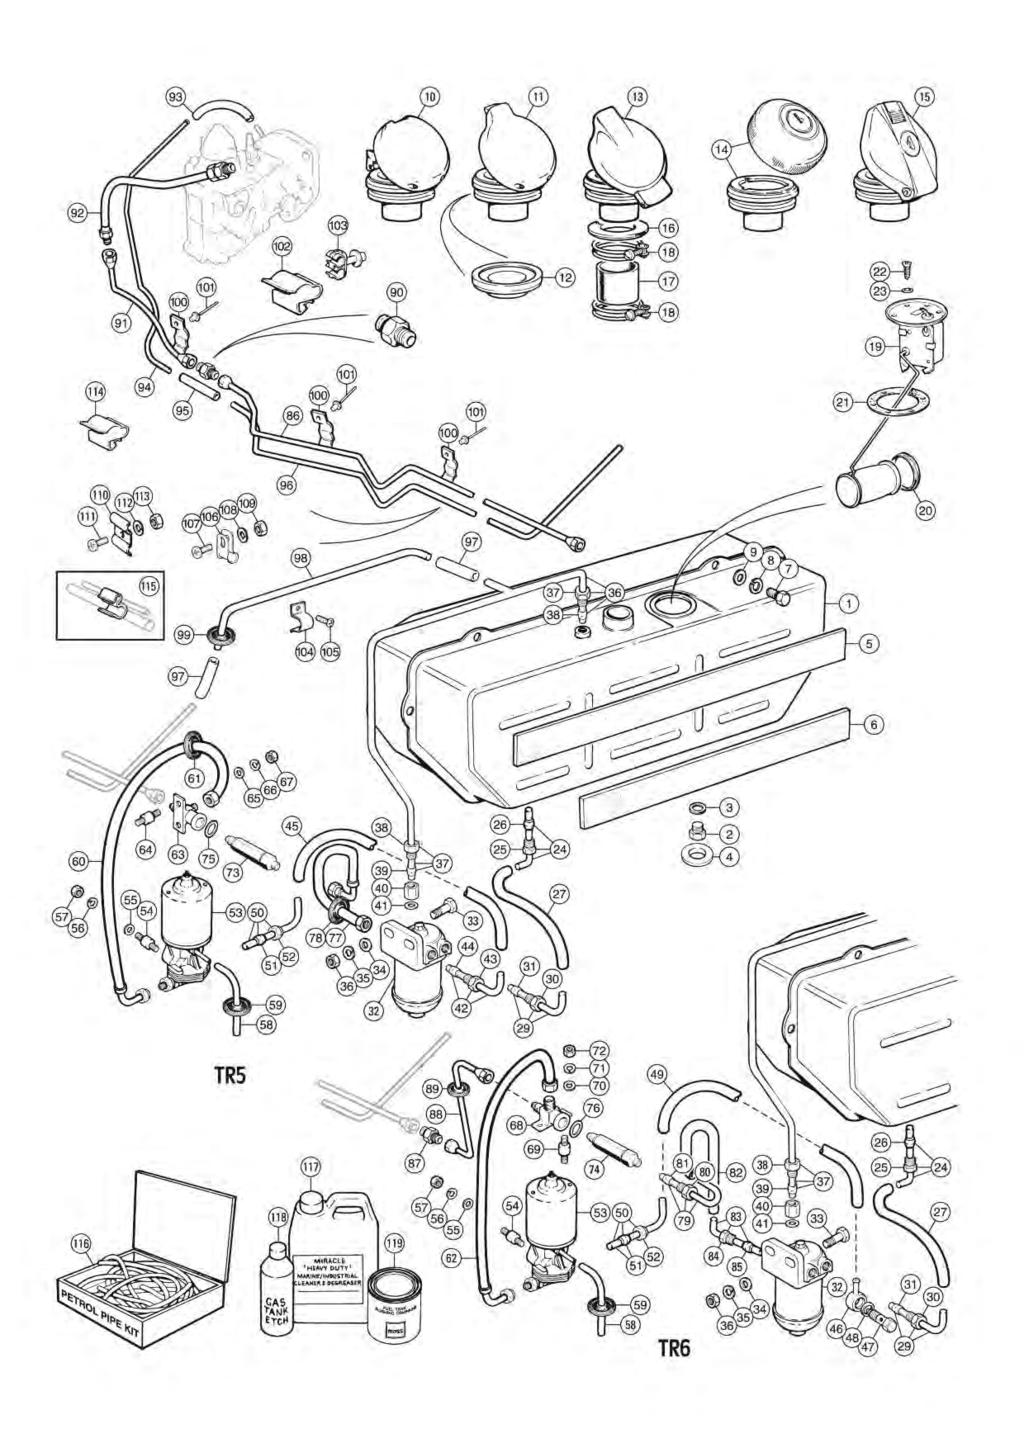 Tr6 Engine Internal Diagram Wiring Diagrams For Dummies Combustion Schematics Rh 9 Ecker Leasing De Cumbustion